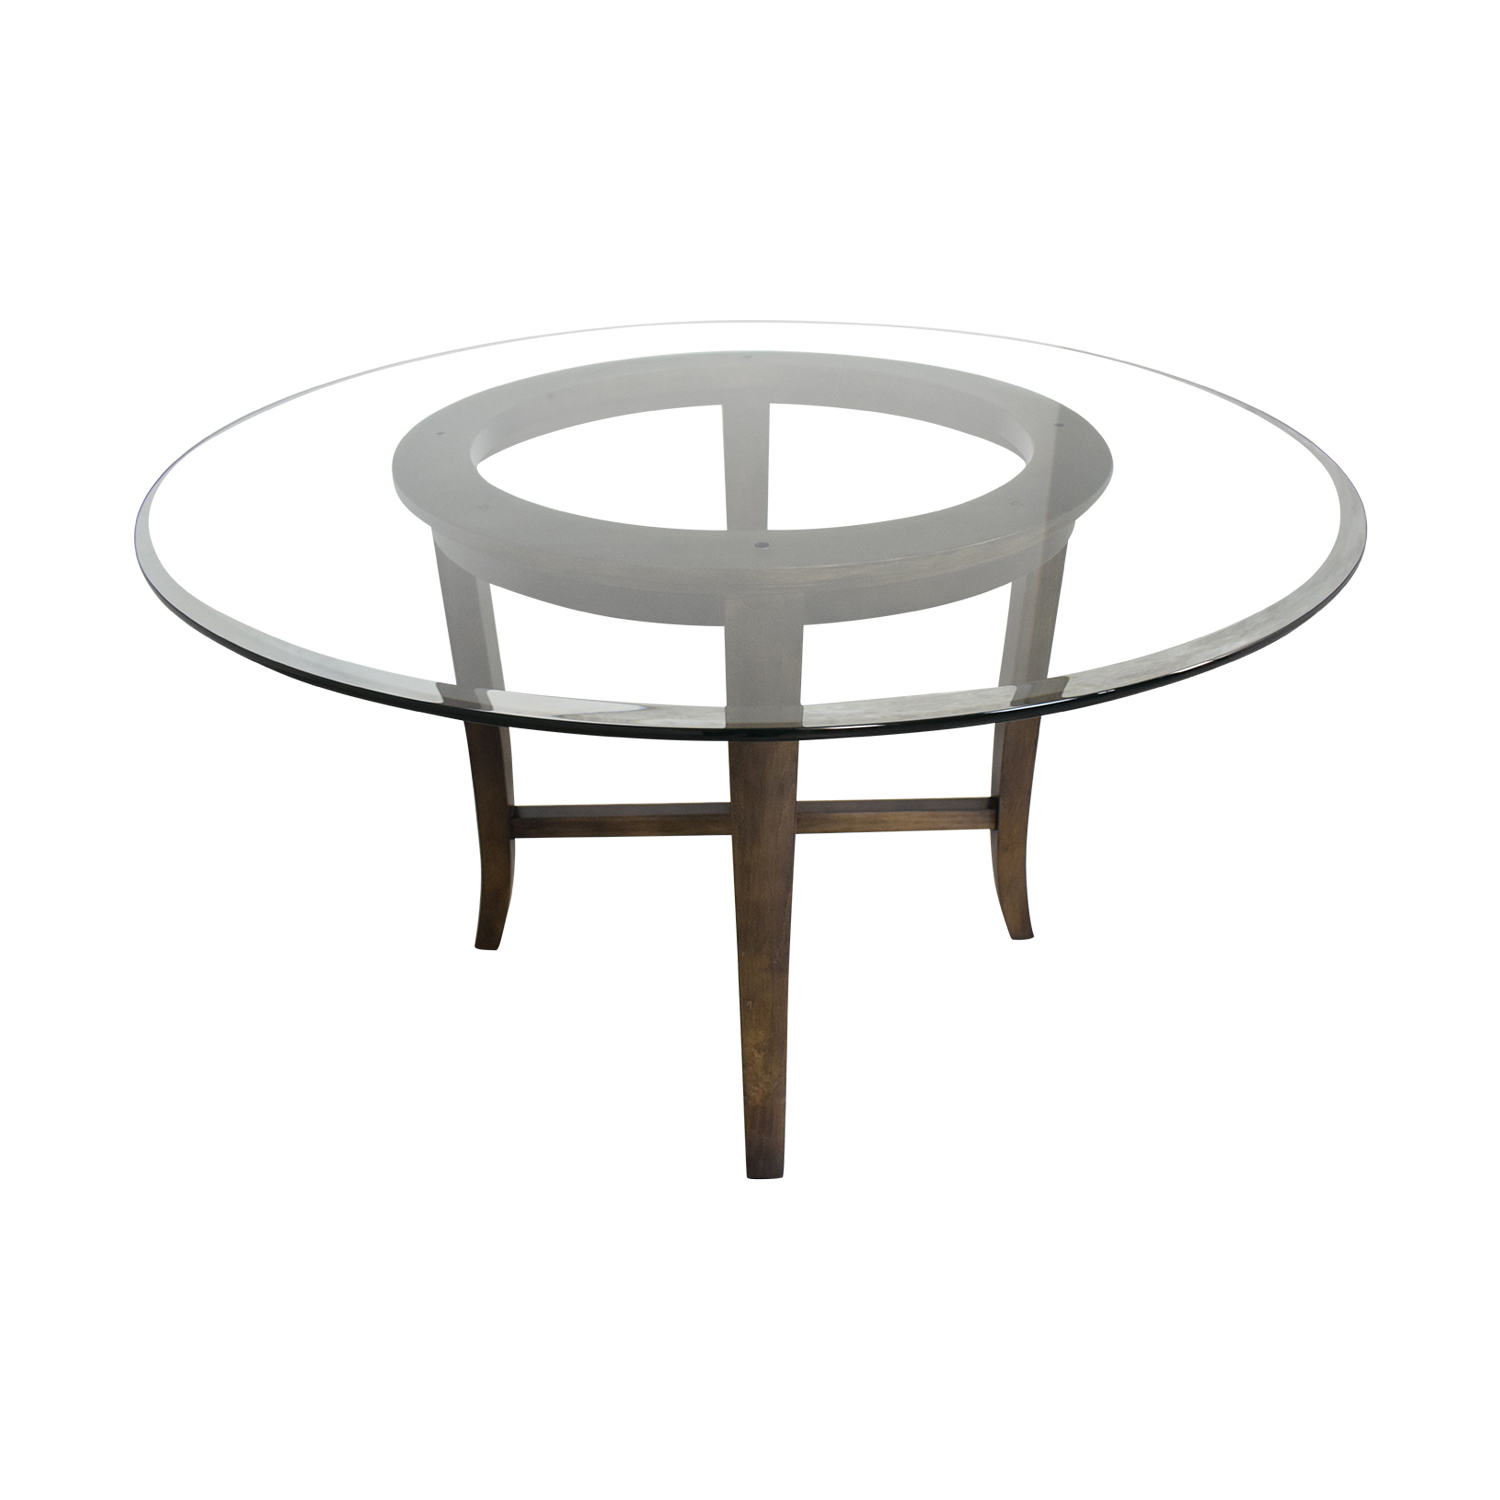 Crate & Barrel Crate & Barrel Halo Round Dining Table second hand